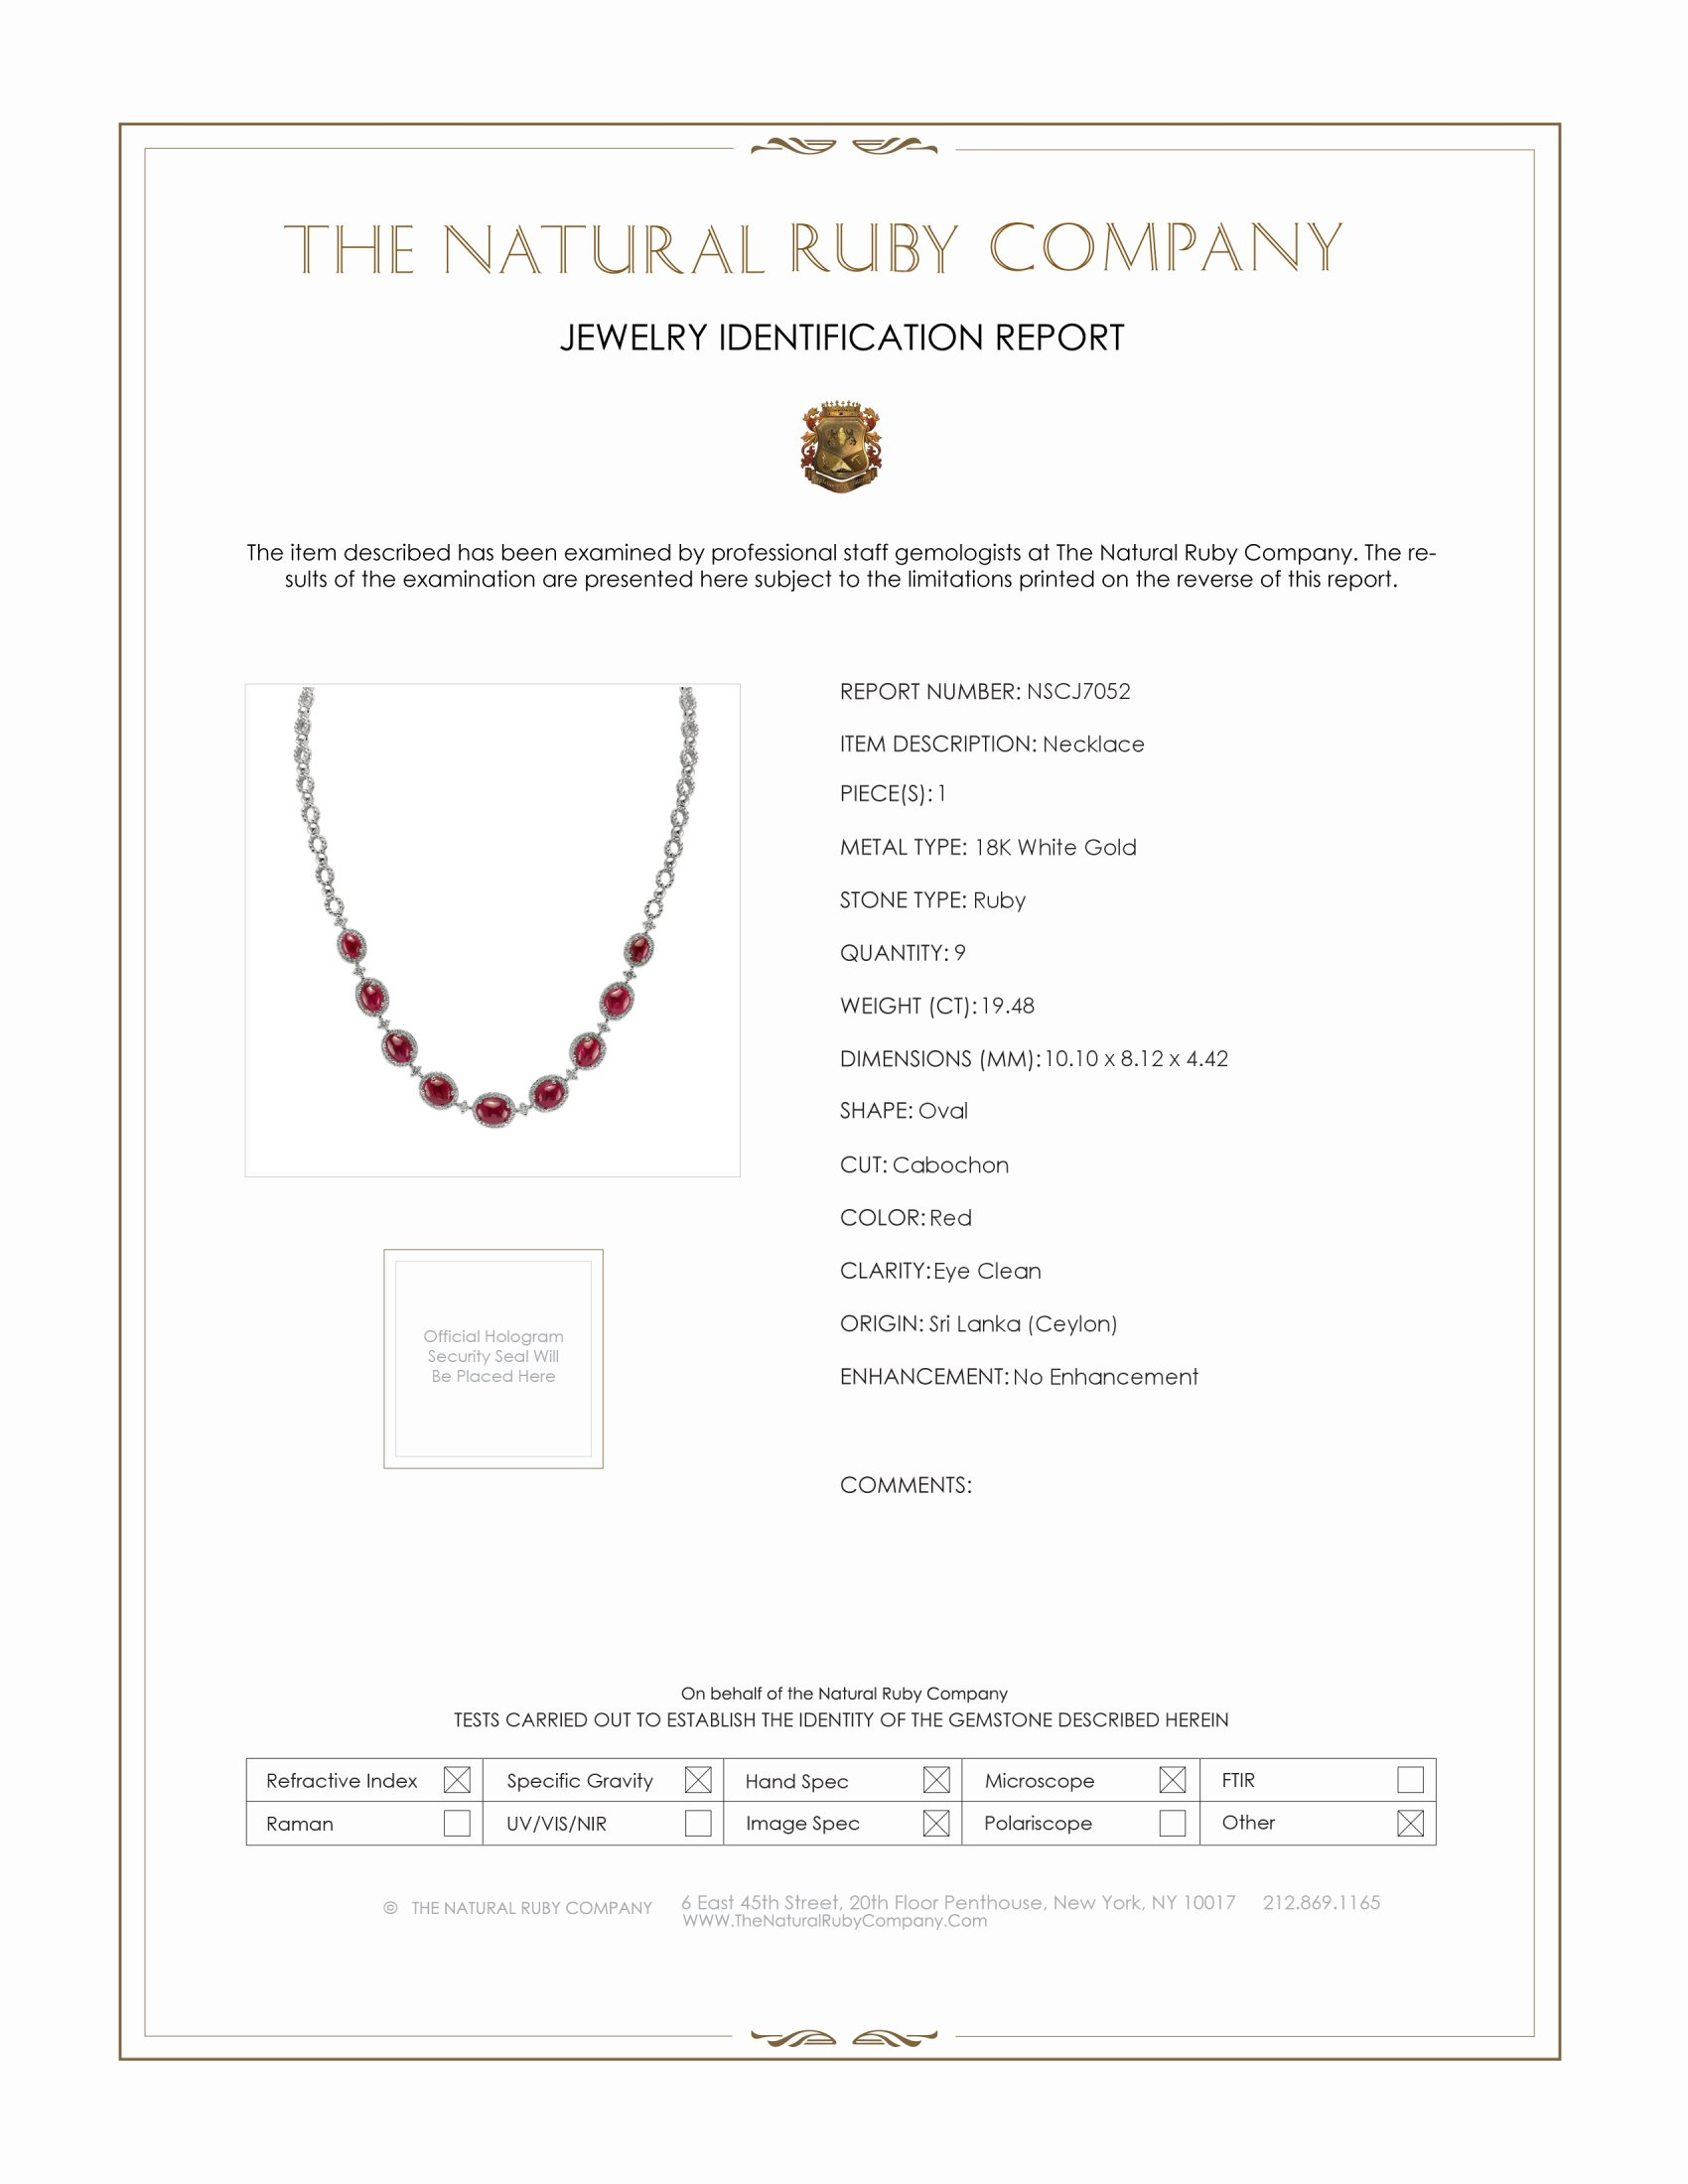 19.48ct Ruby Necklace Certification